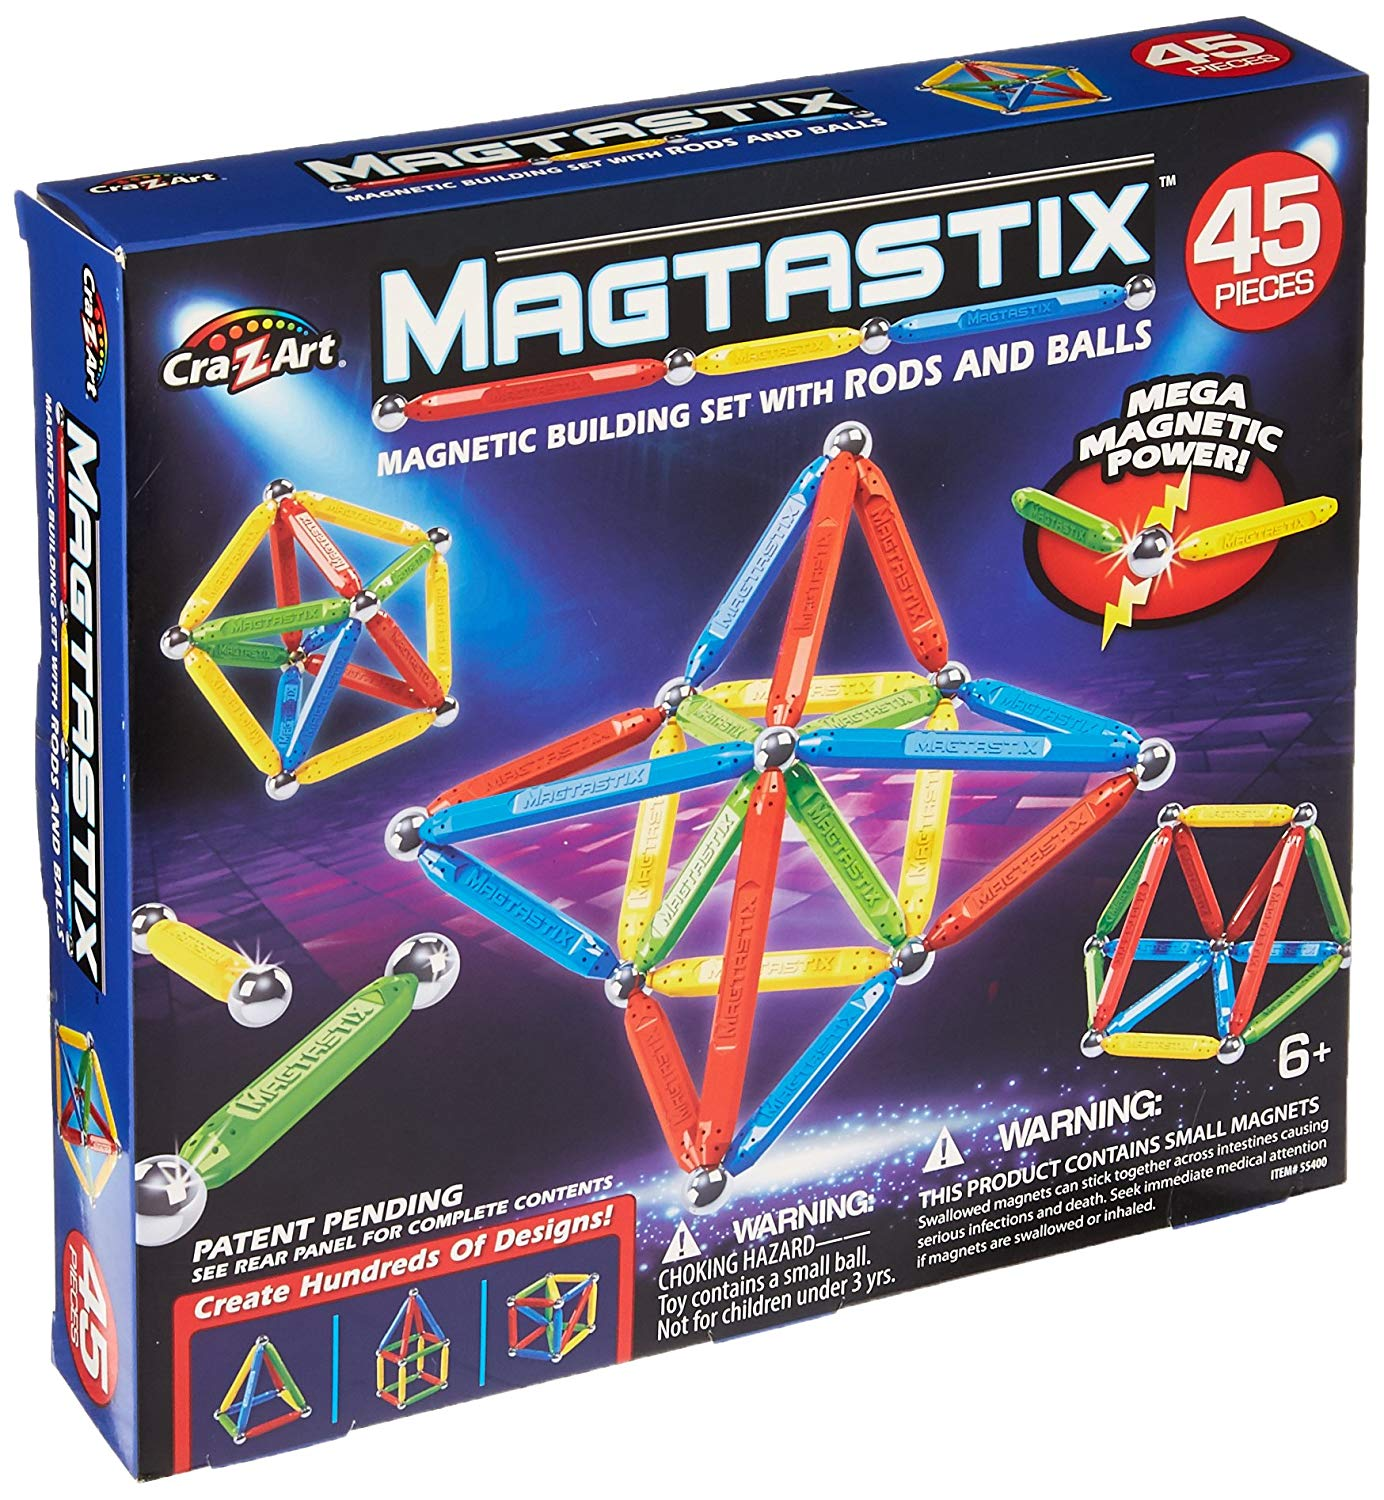 Cra-Z-Art Magtastix Balls & Rods Building Kit (45 Piece)